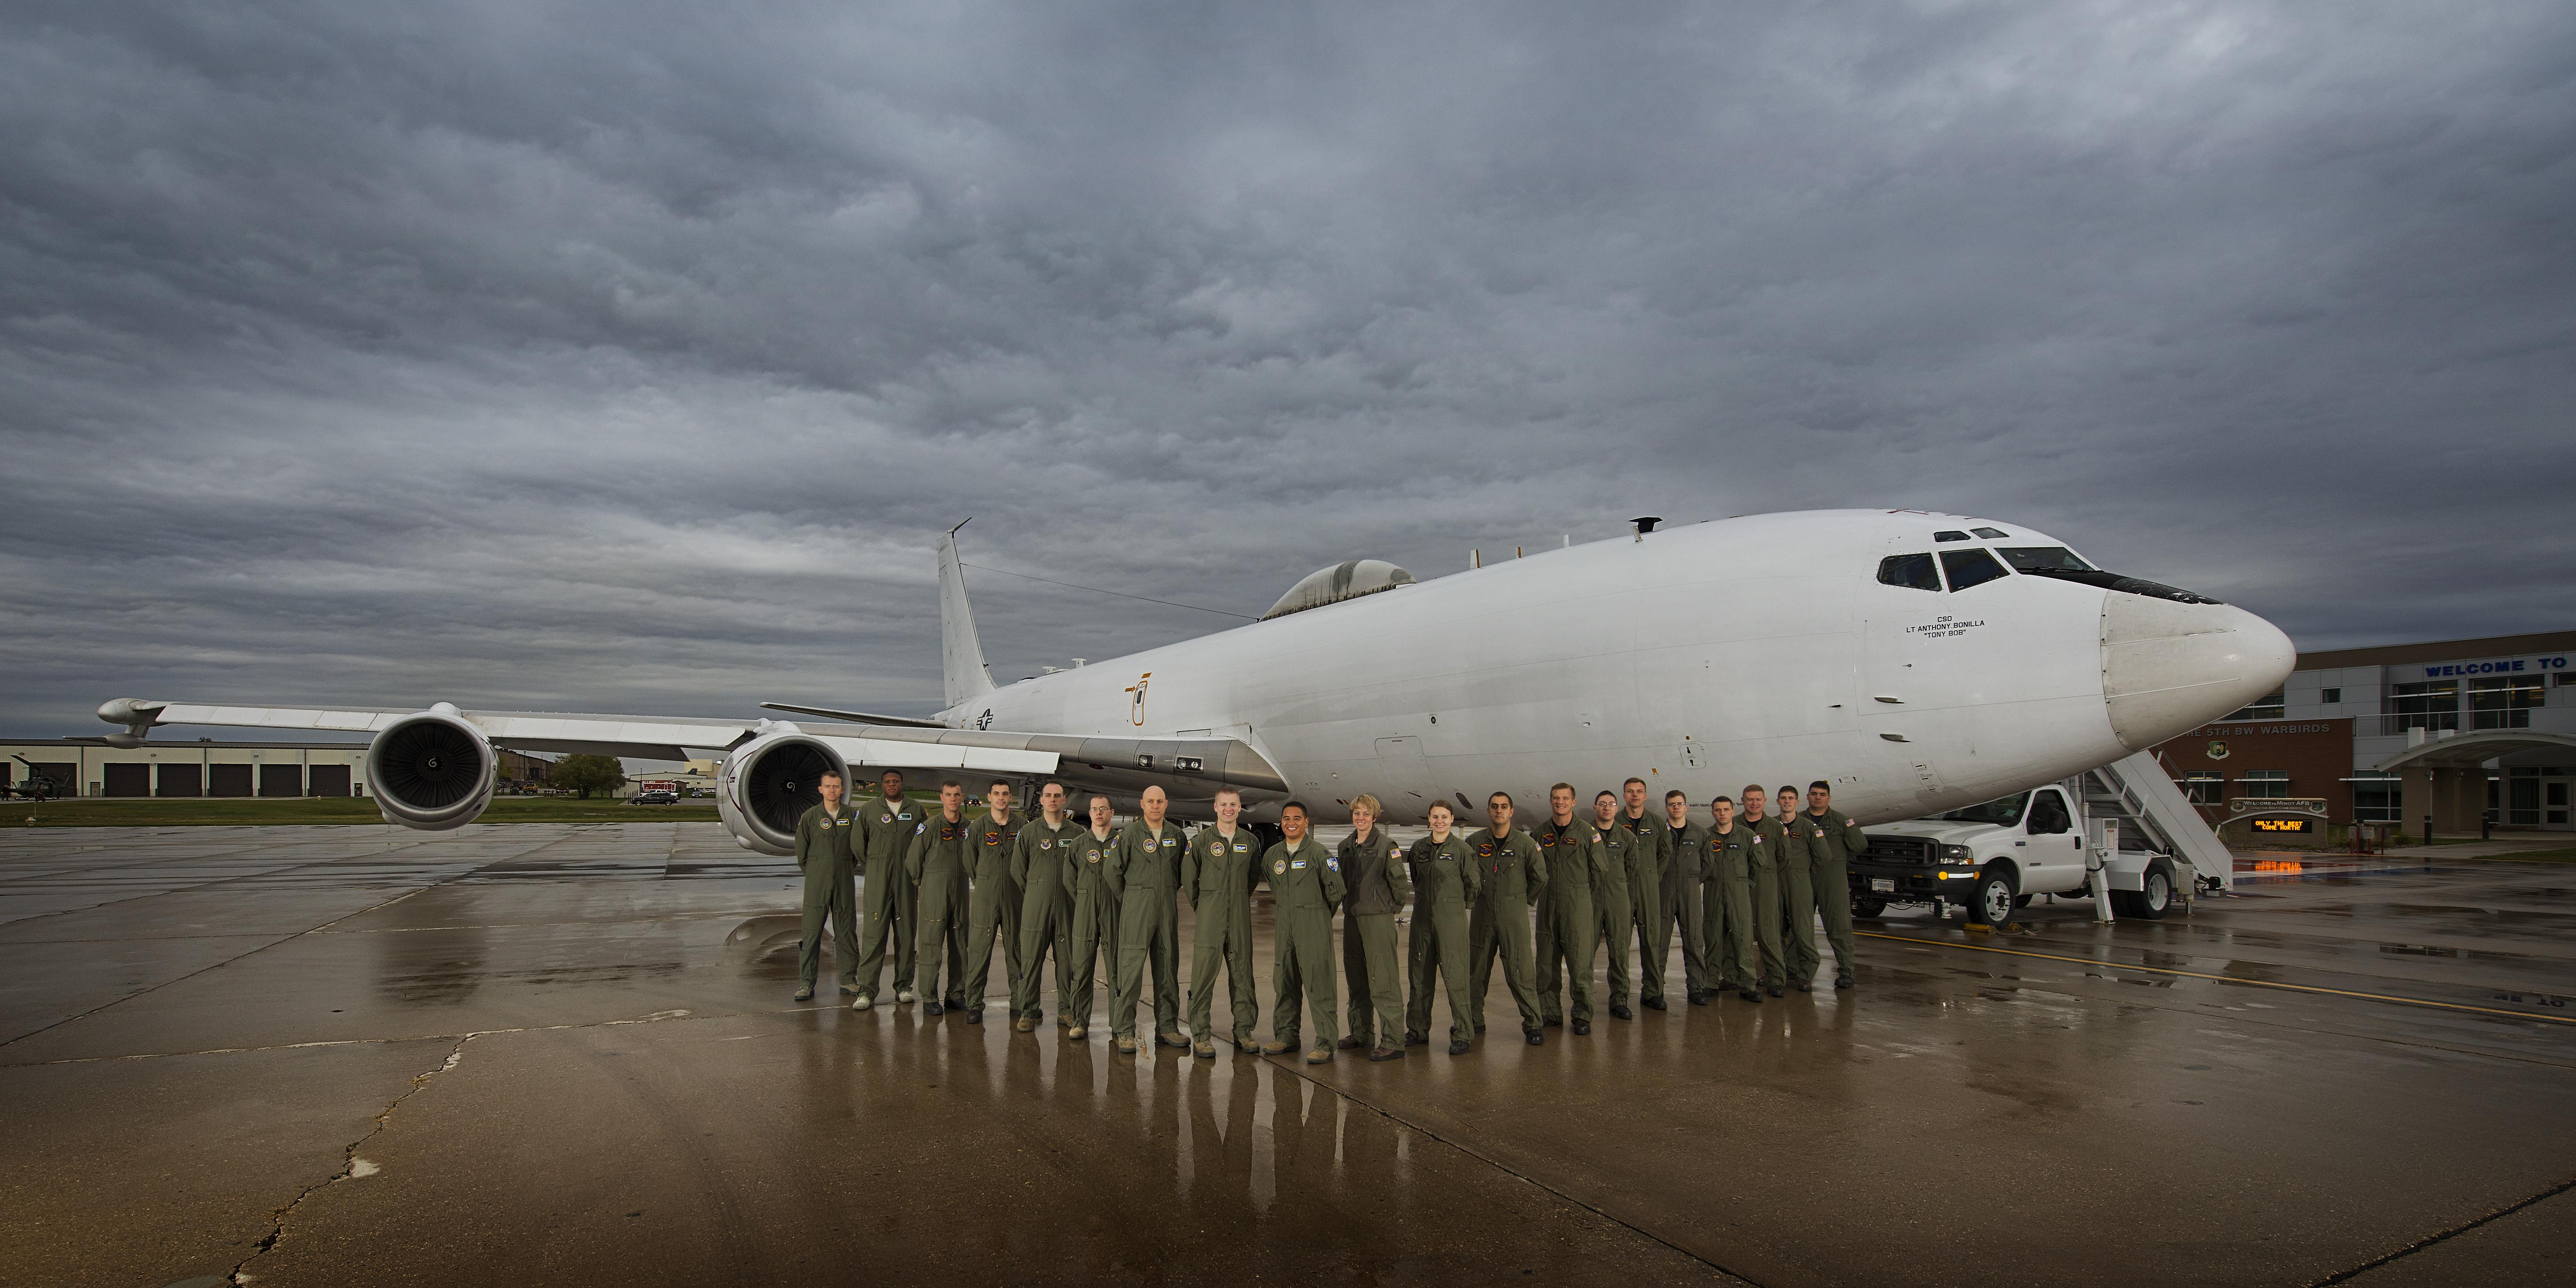 Looking Glass: USSTRATCOM's Airborne Command Post > Minot